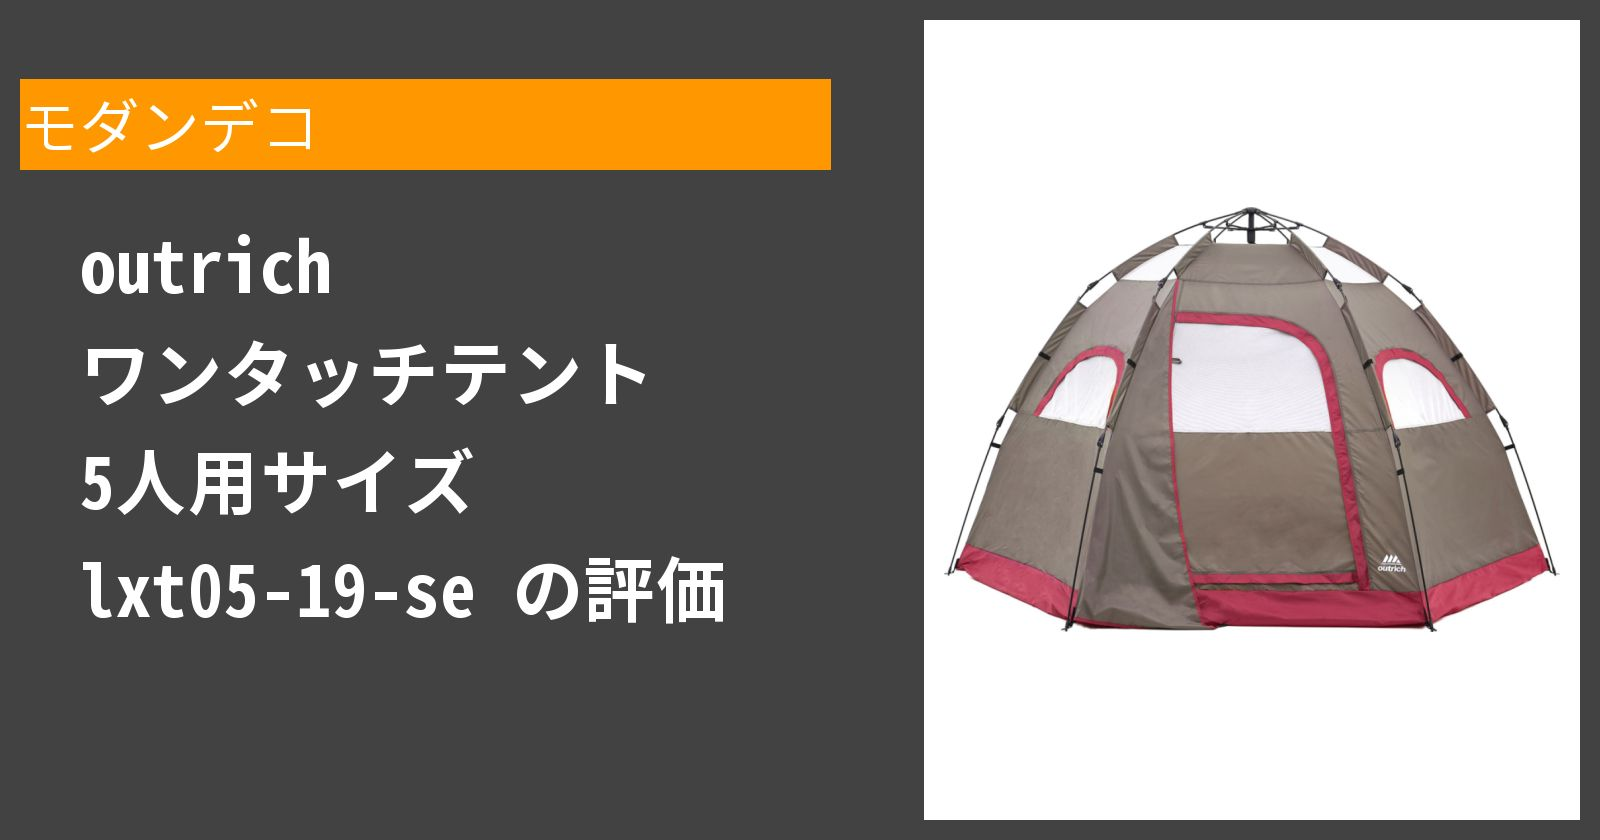 outrich ワンタッチテント 5人用サイズ lxt05-19-seを徹底評価